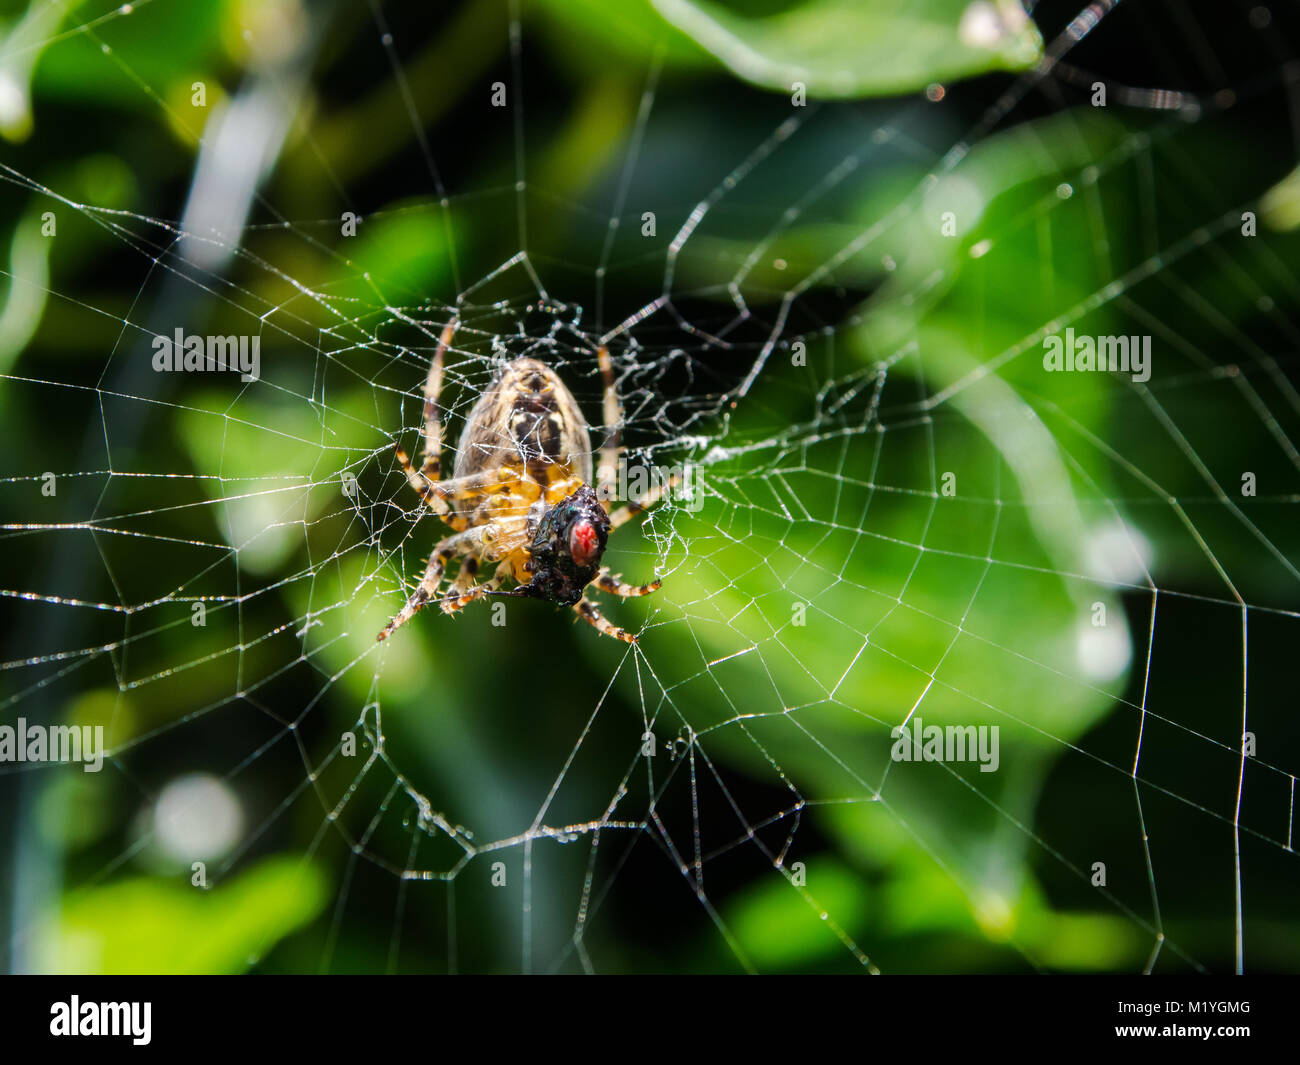 a-common-garden-spider-consumes-the-head-of-a-fly-that-is-trapped-M1YGMG.jpg